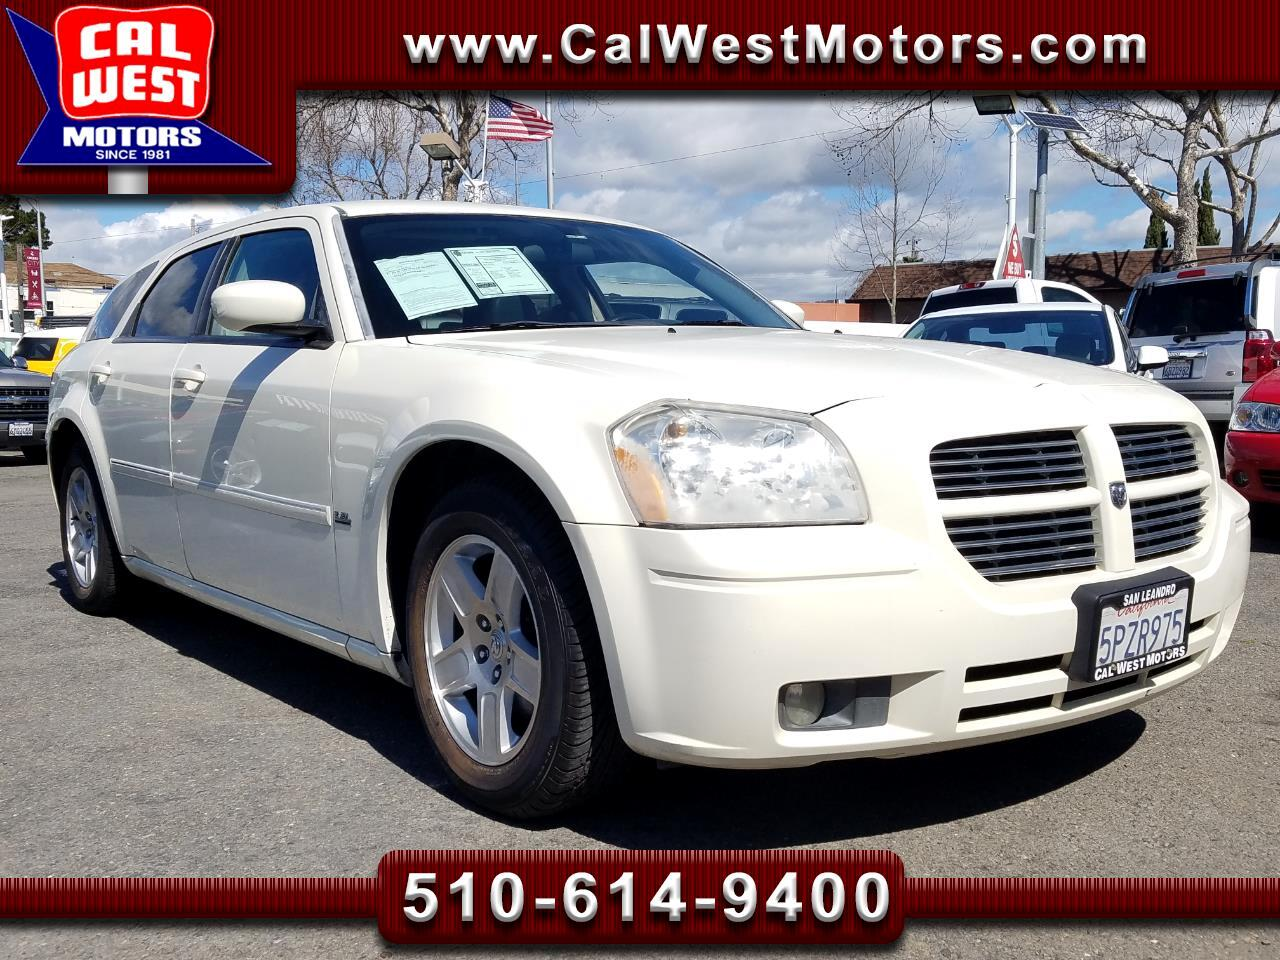 2005 Dodge Magnum SXT RWD 4Dr Wagon 1 Owner Expertly Maintained